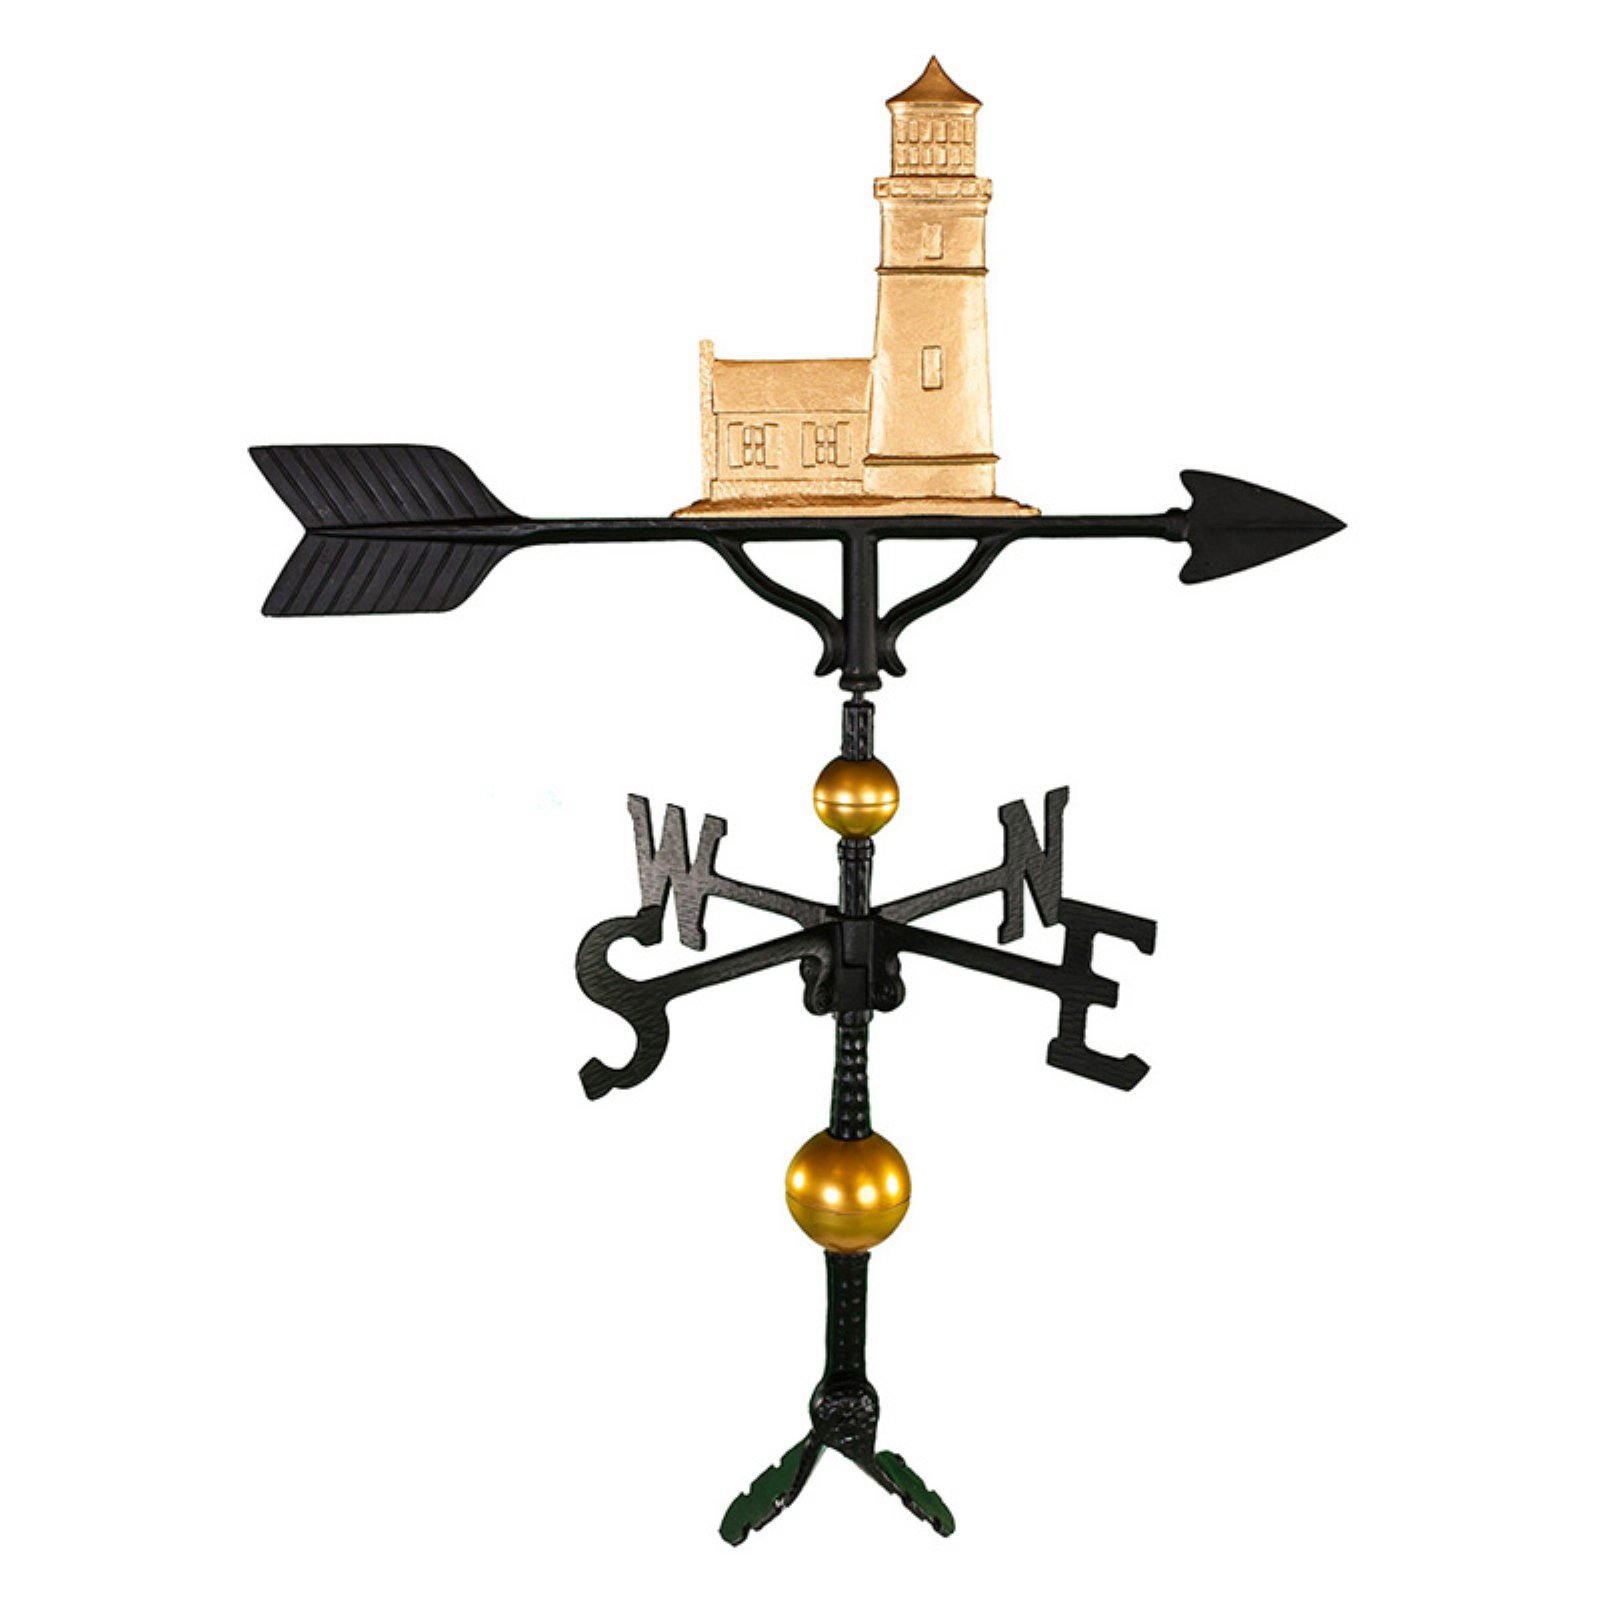 Deluxe Gold Cottage Lighthouse Weathervane 32 in. by Montague Metal Products